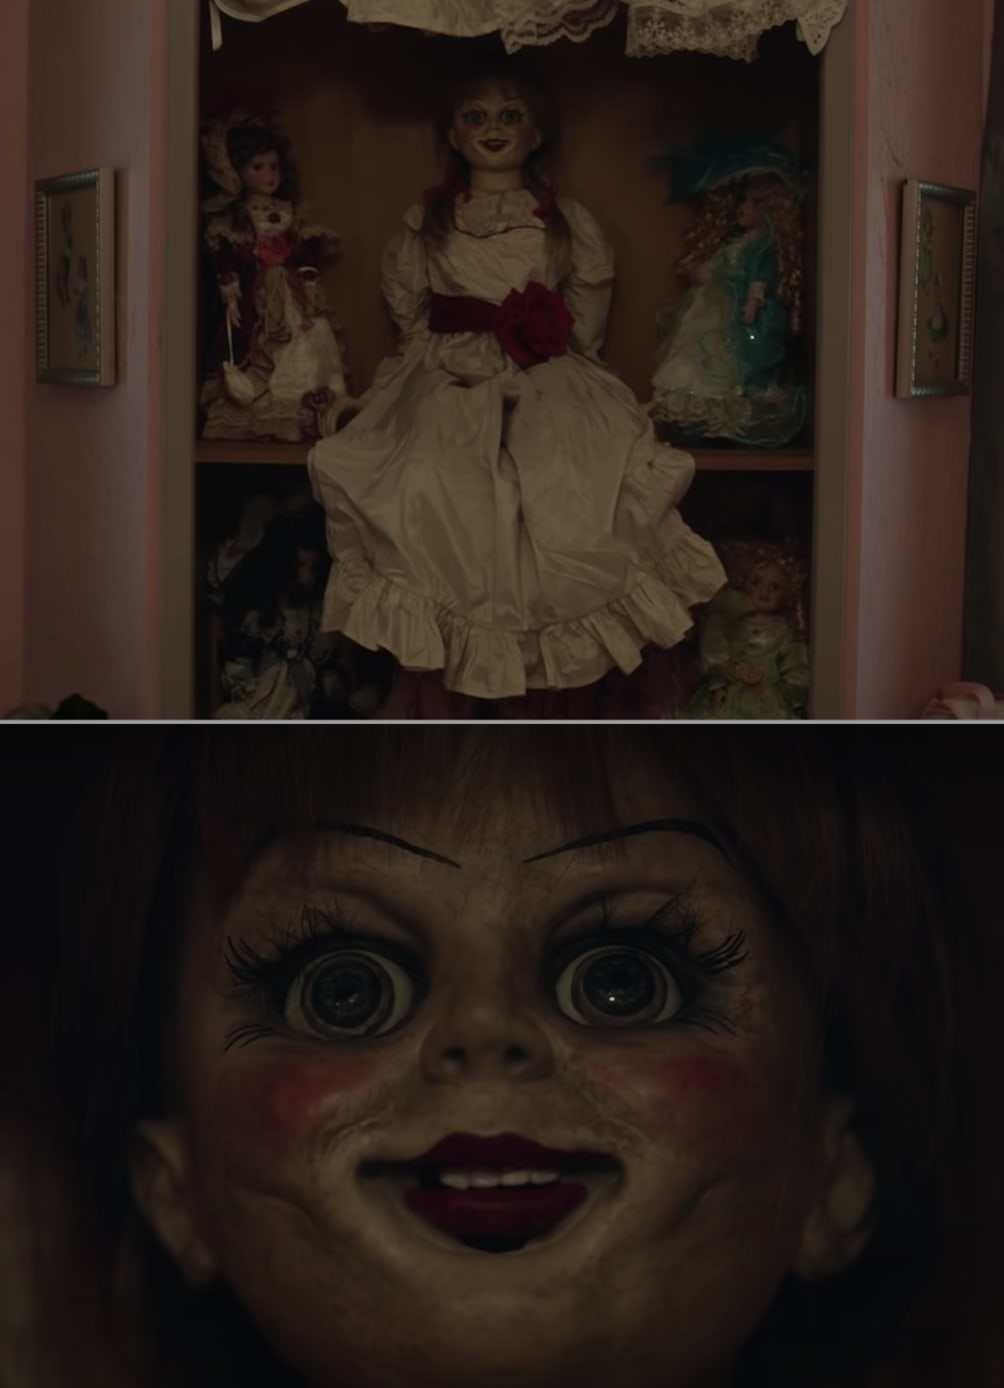 Annabelle, the doll, in the movie